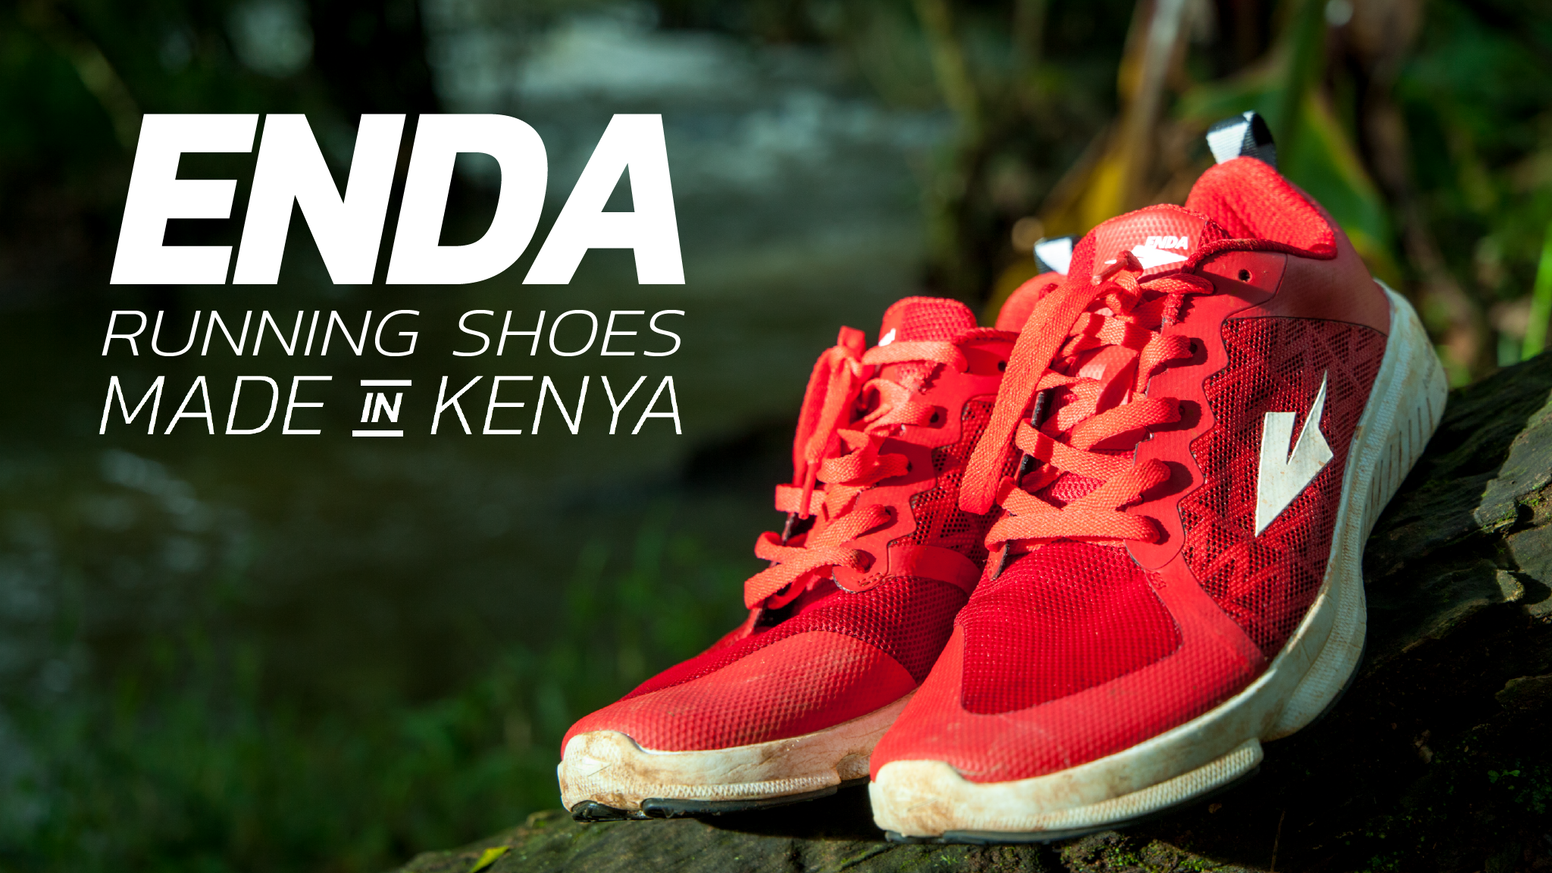 48bb55e0b055 Enda  The First Kenyan Running Shoe by Enda — Kickstarter